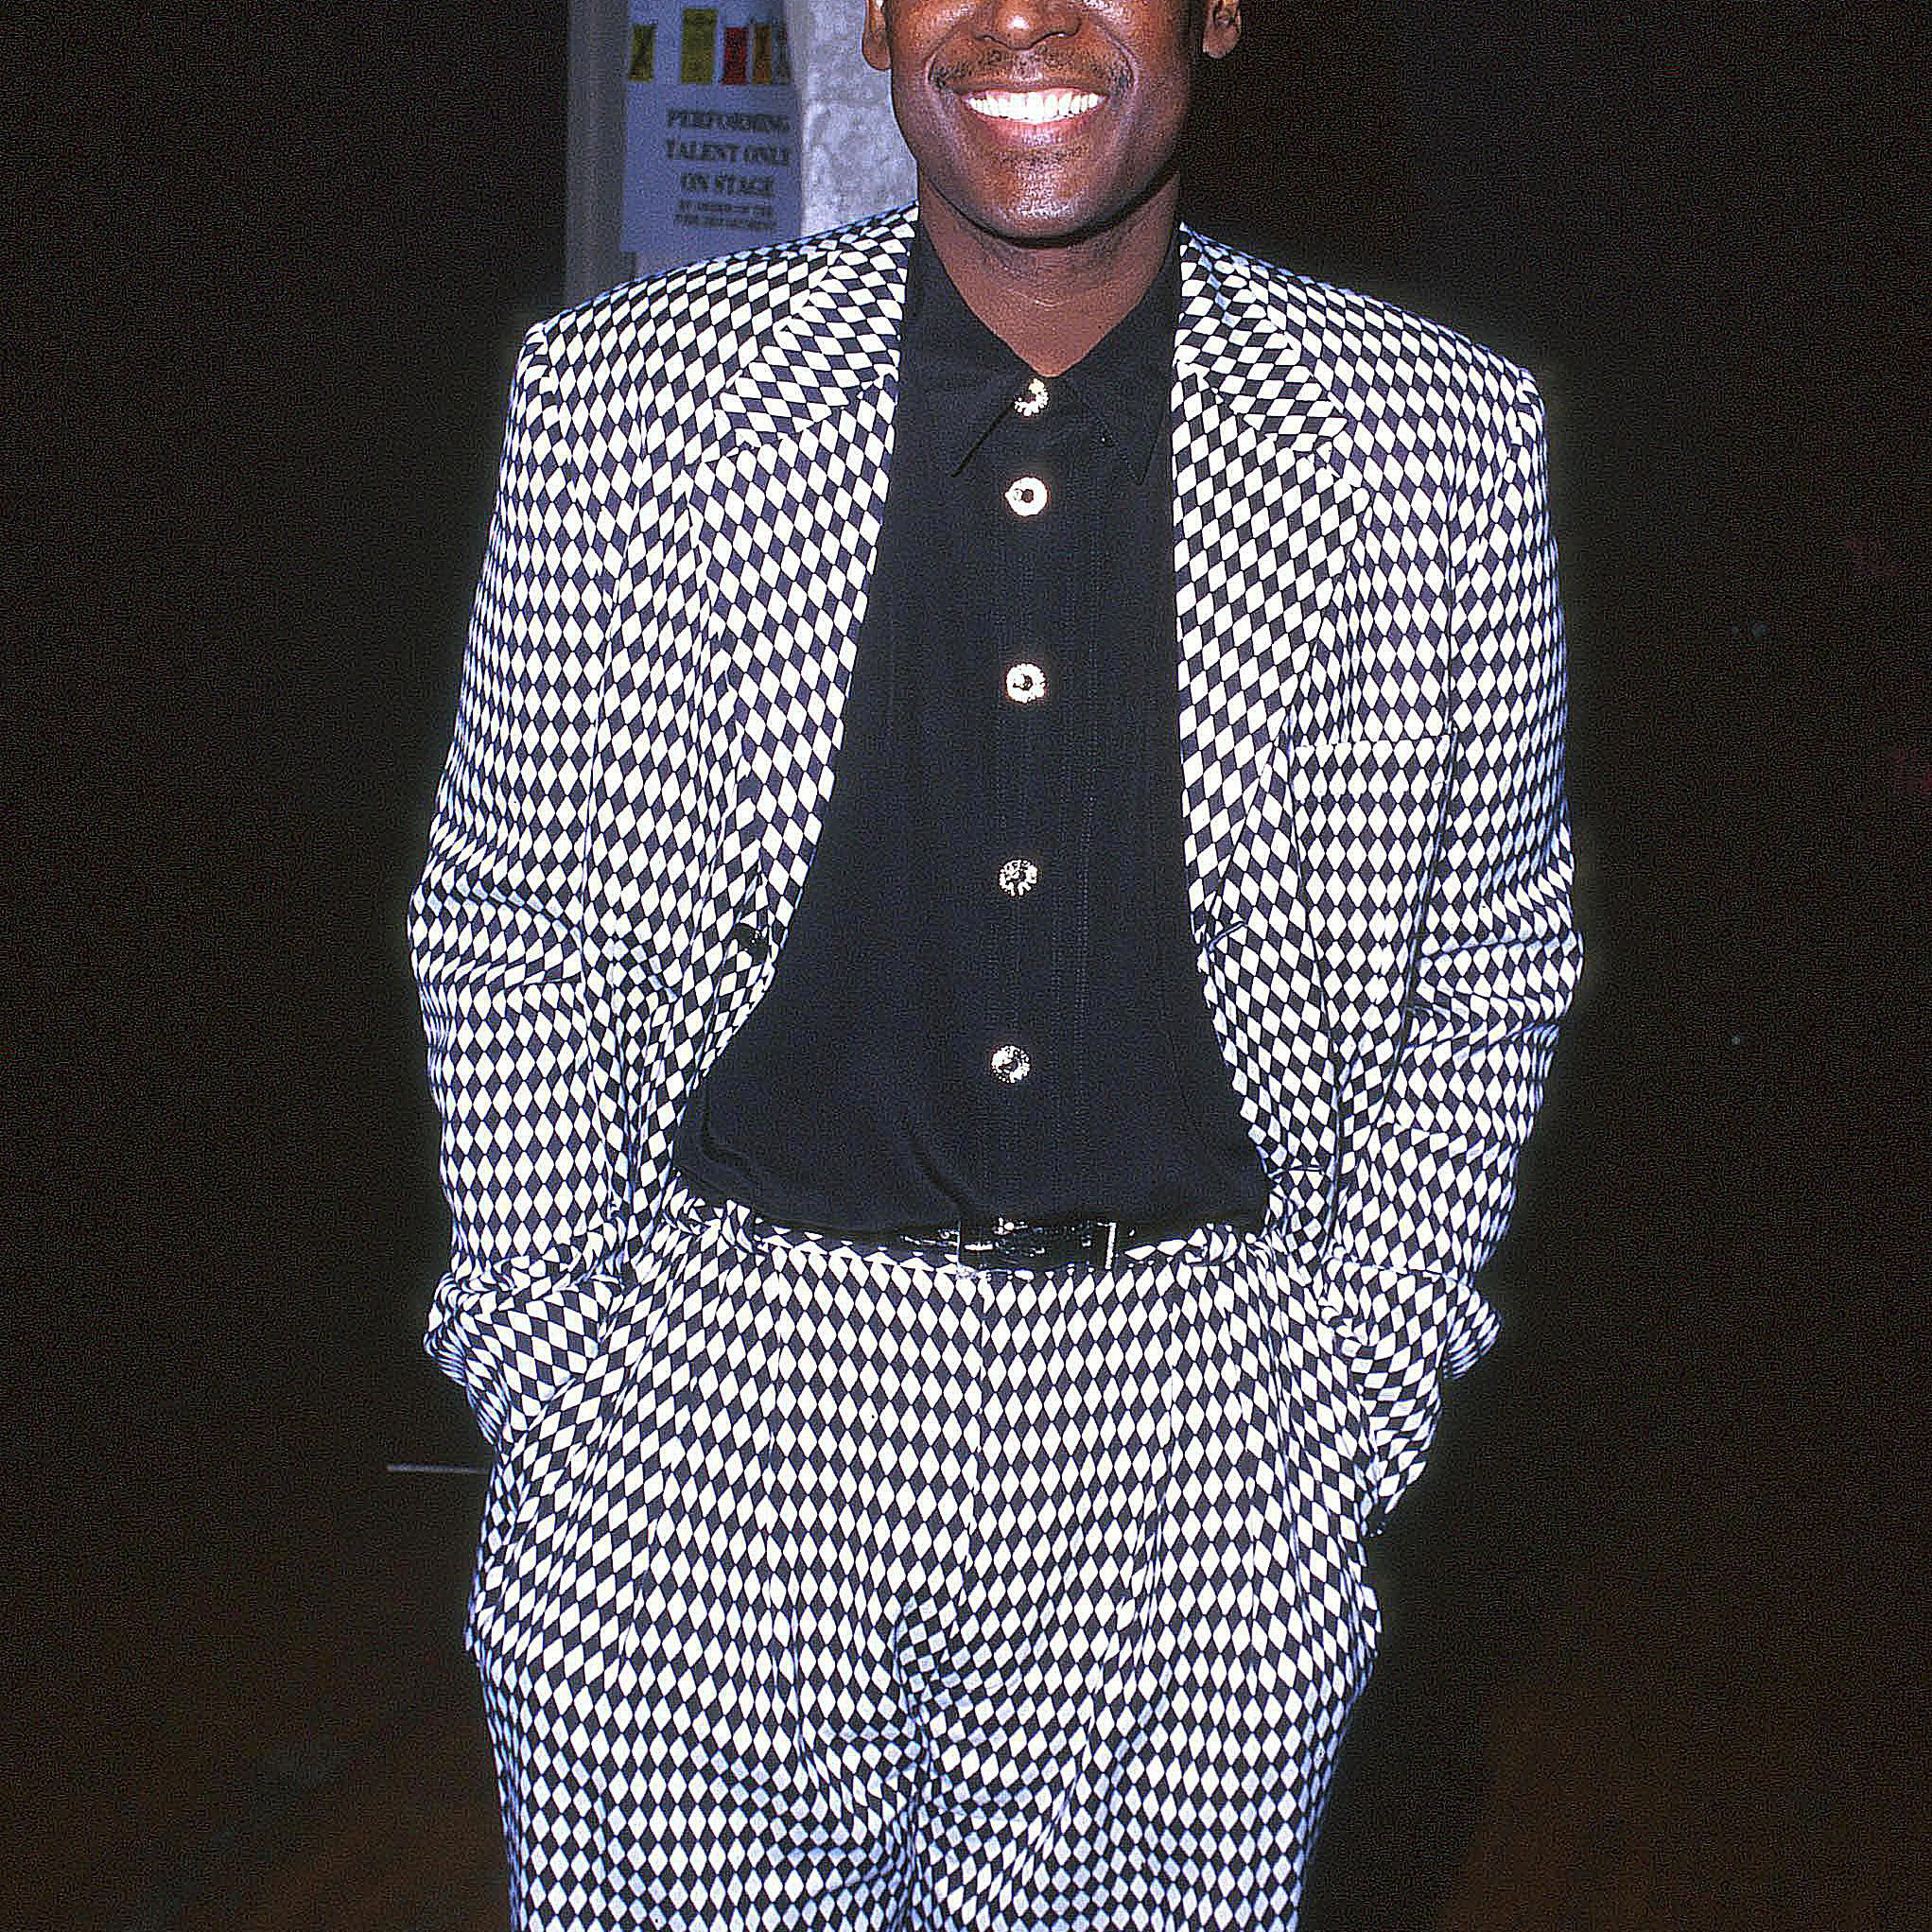 Luther Vandross at an event